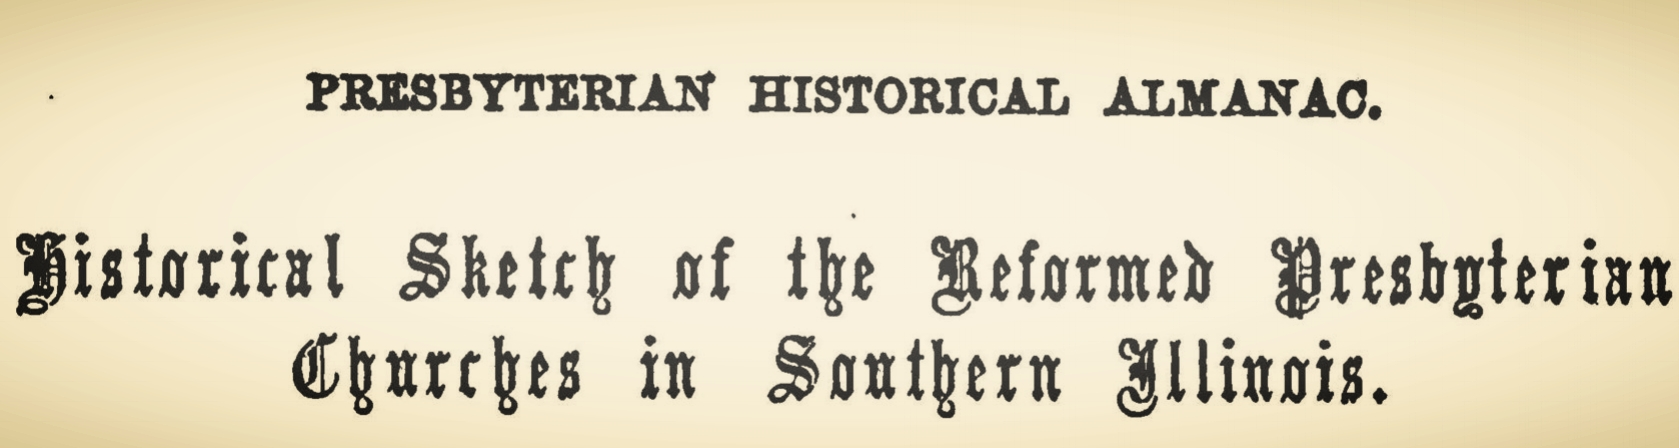 Wylie, Samuel, Historical Sketch of the Reformed Presbyterian Churches of Southern Illinois Title Page.jpg